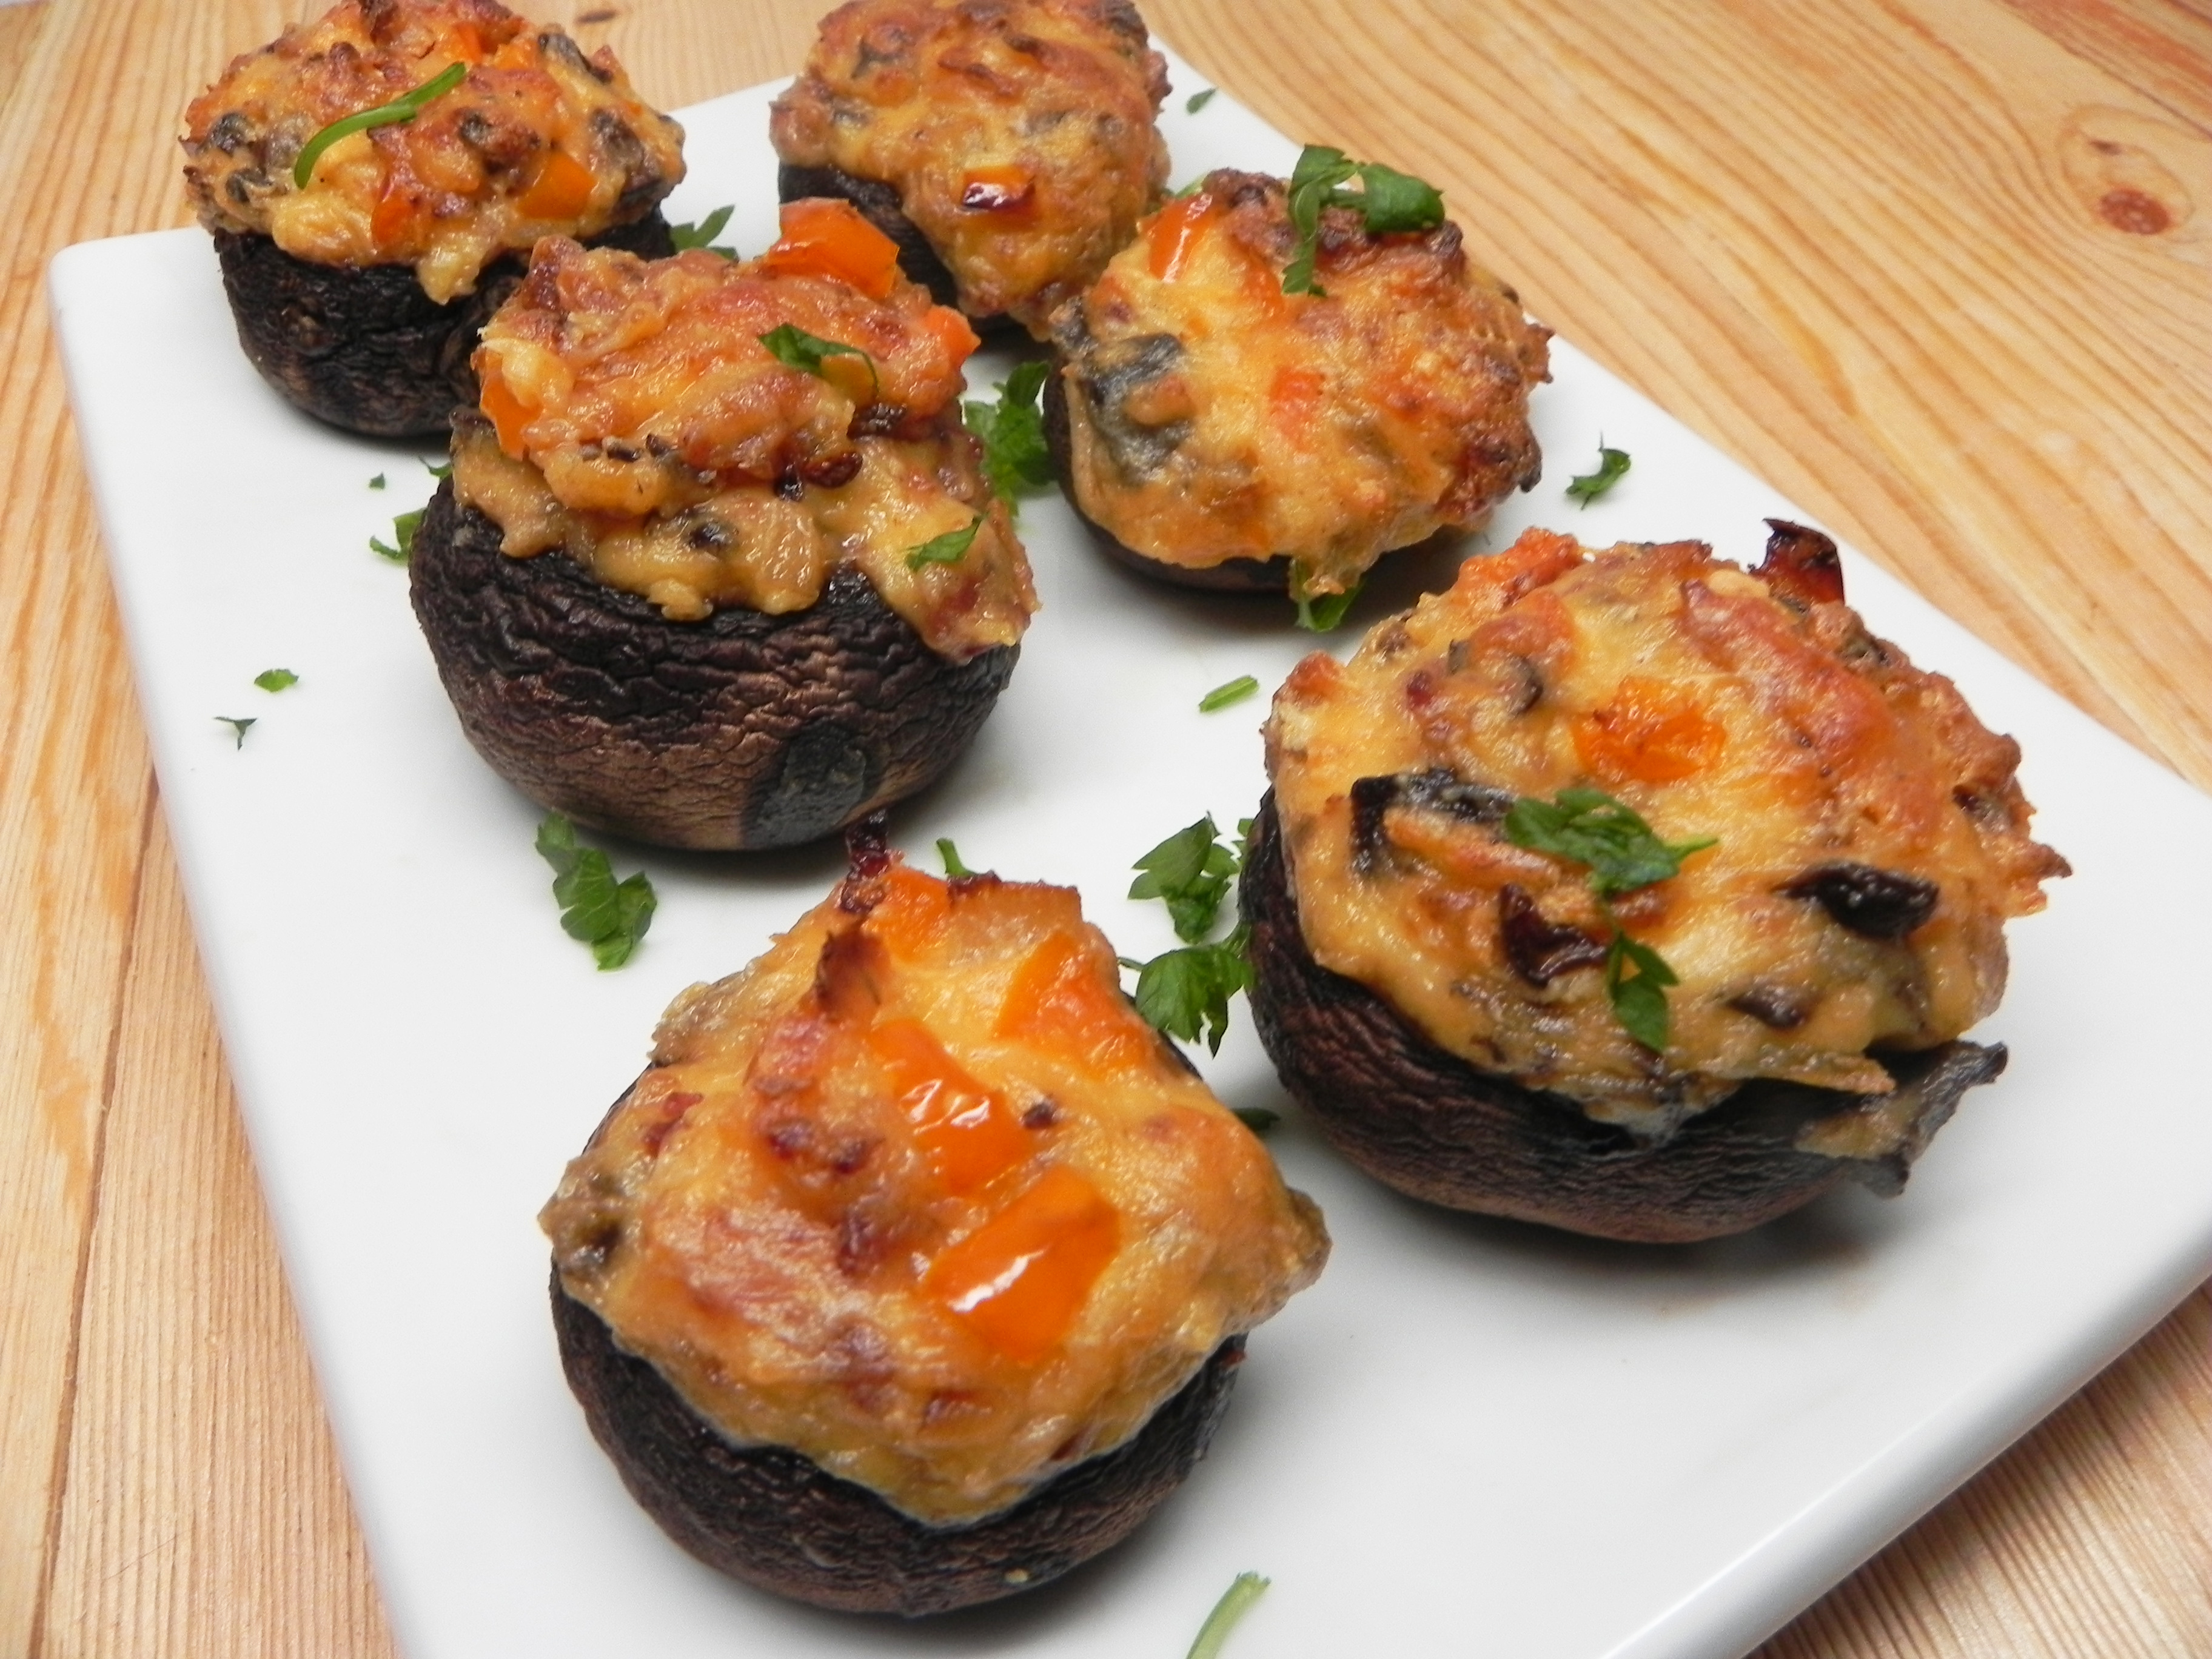 """These are great stuffed mushrooms, the recipe uses sour cream and grated cheese to hold the stuffing together, it is far and away my favorite pre-dinner snack to serve at parties,"" says MumAndMe. You can also make these cheesy mushrooms under the broiler: Bake at 325 degrees F until the cheese in bubbly and browned, about 15 minutes.."